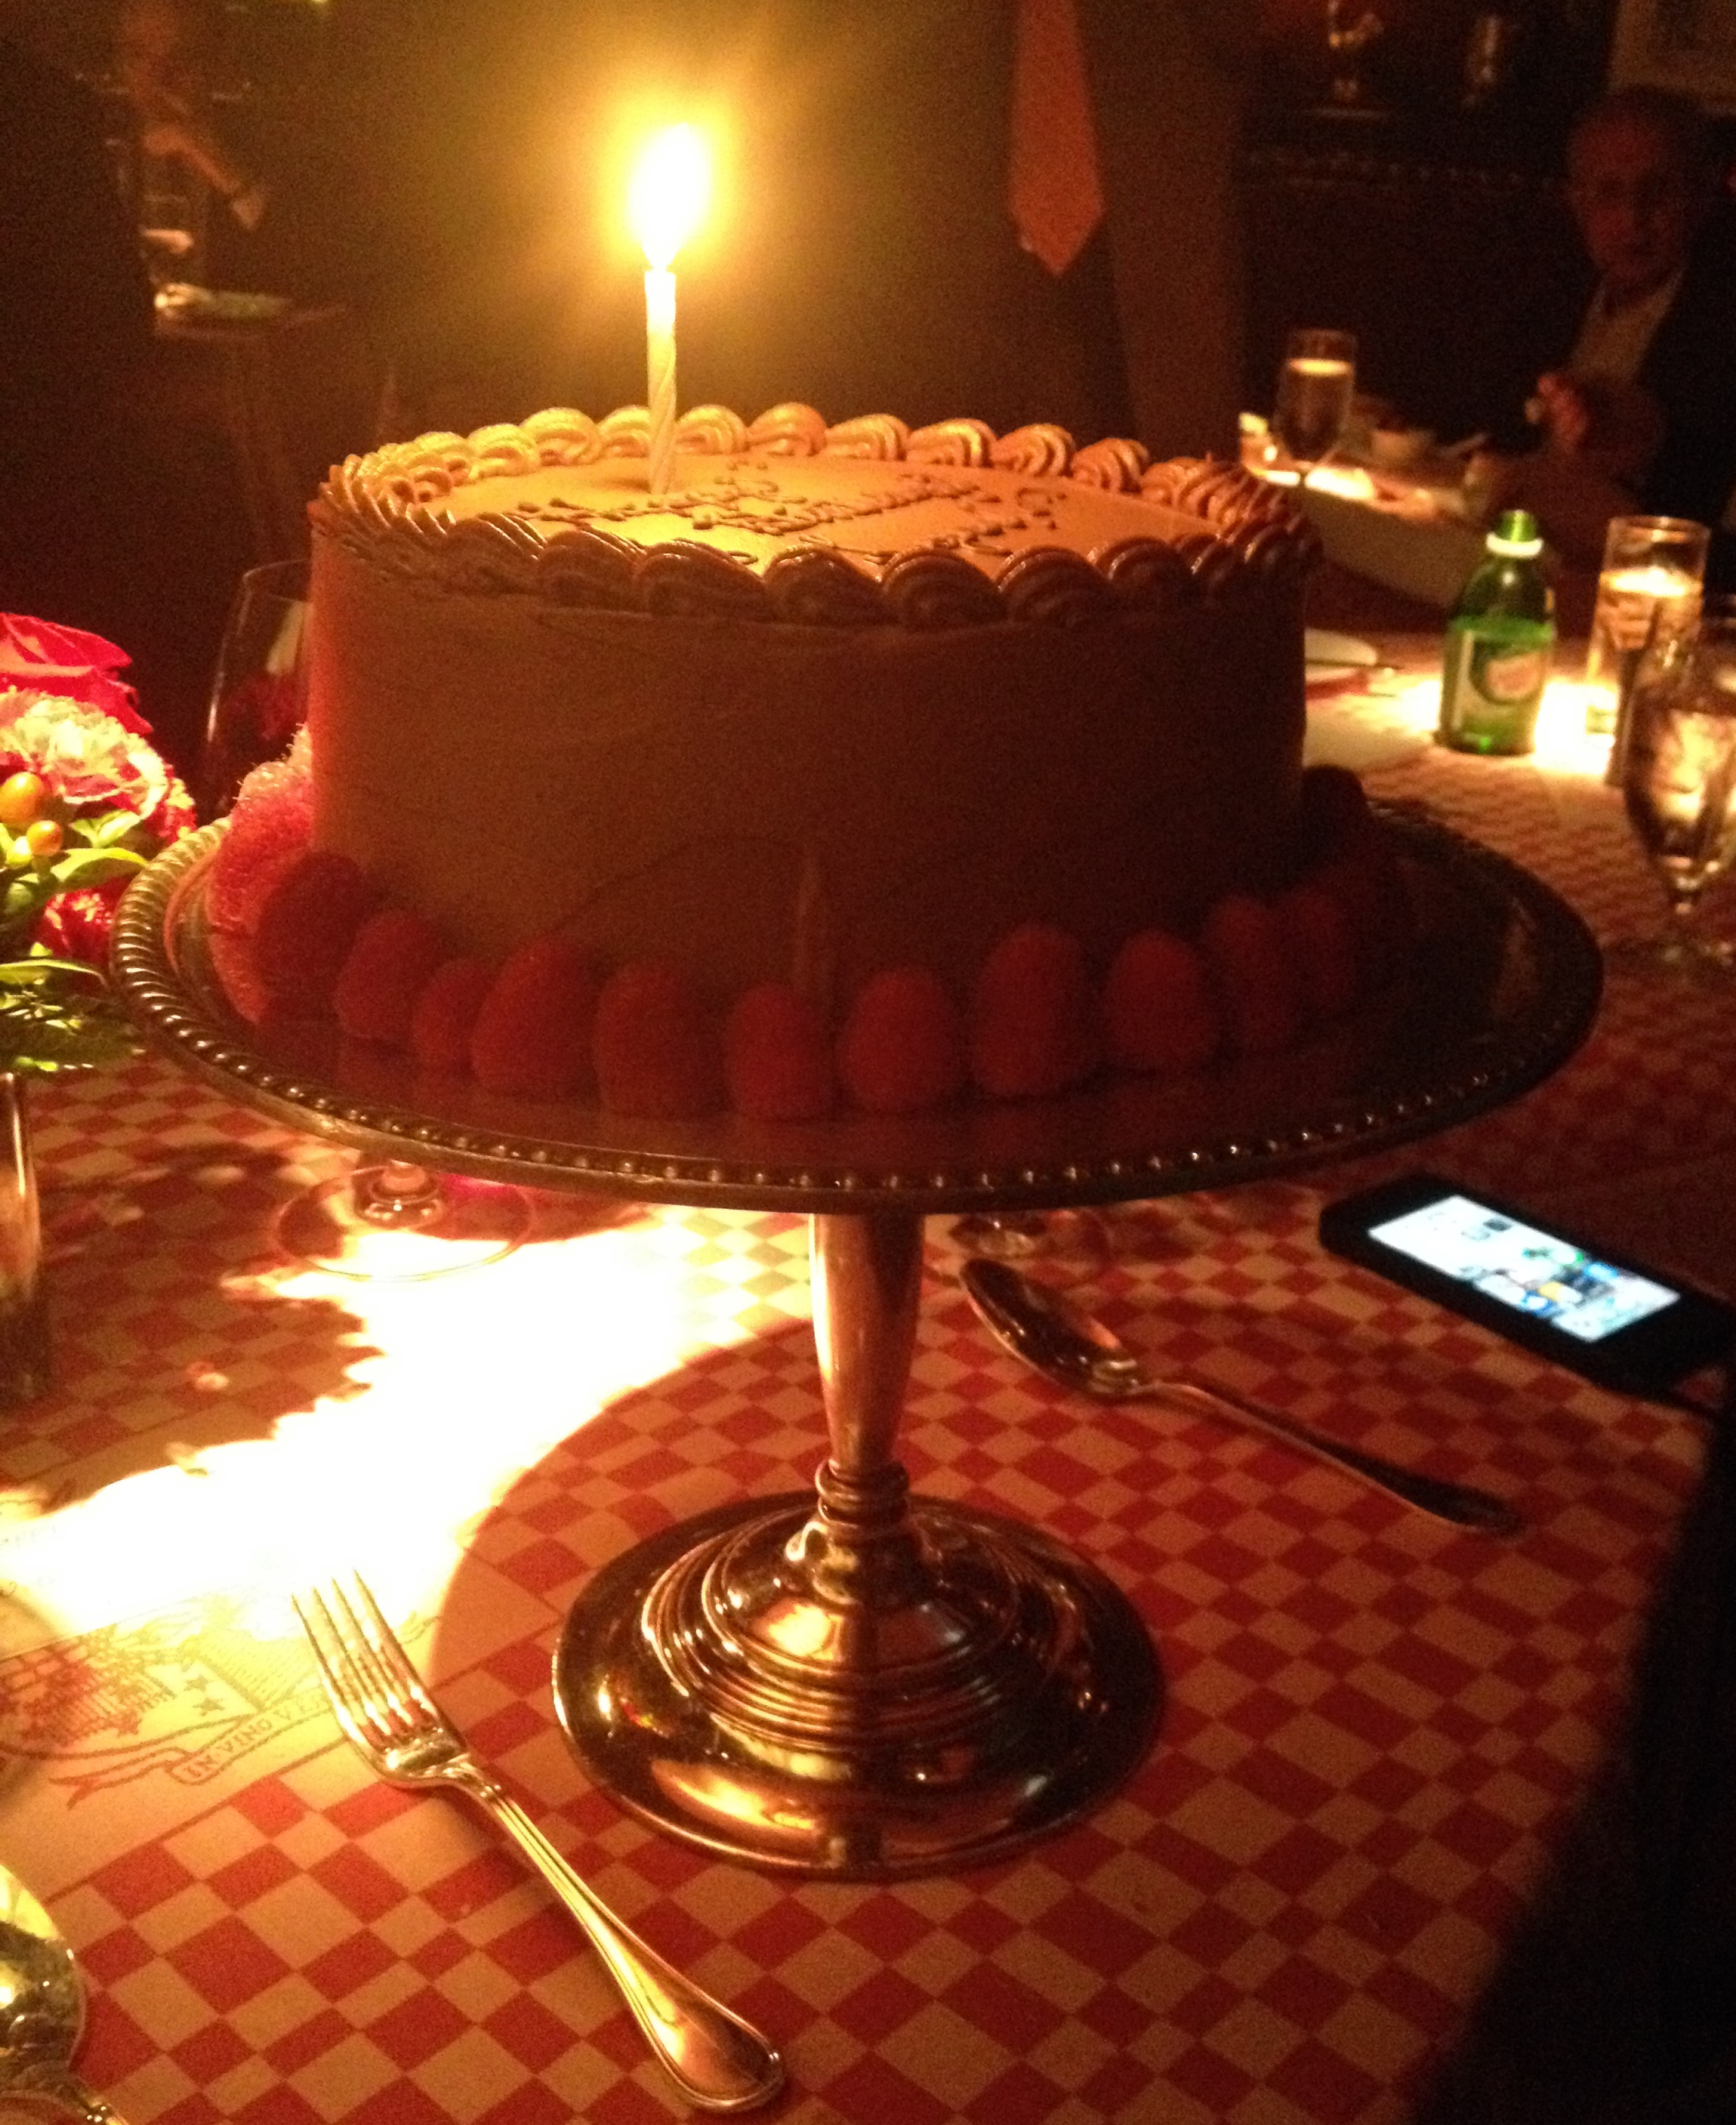 21 Club in New York City - A huge birthday cake!